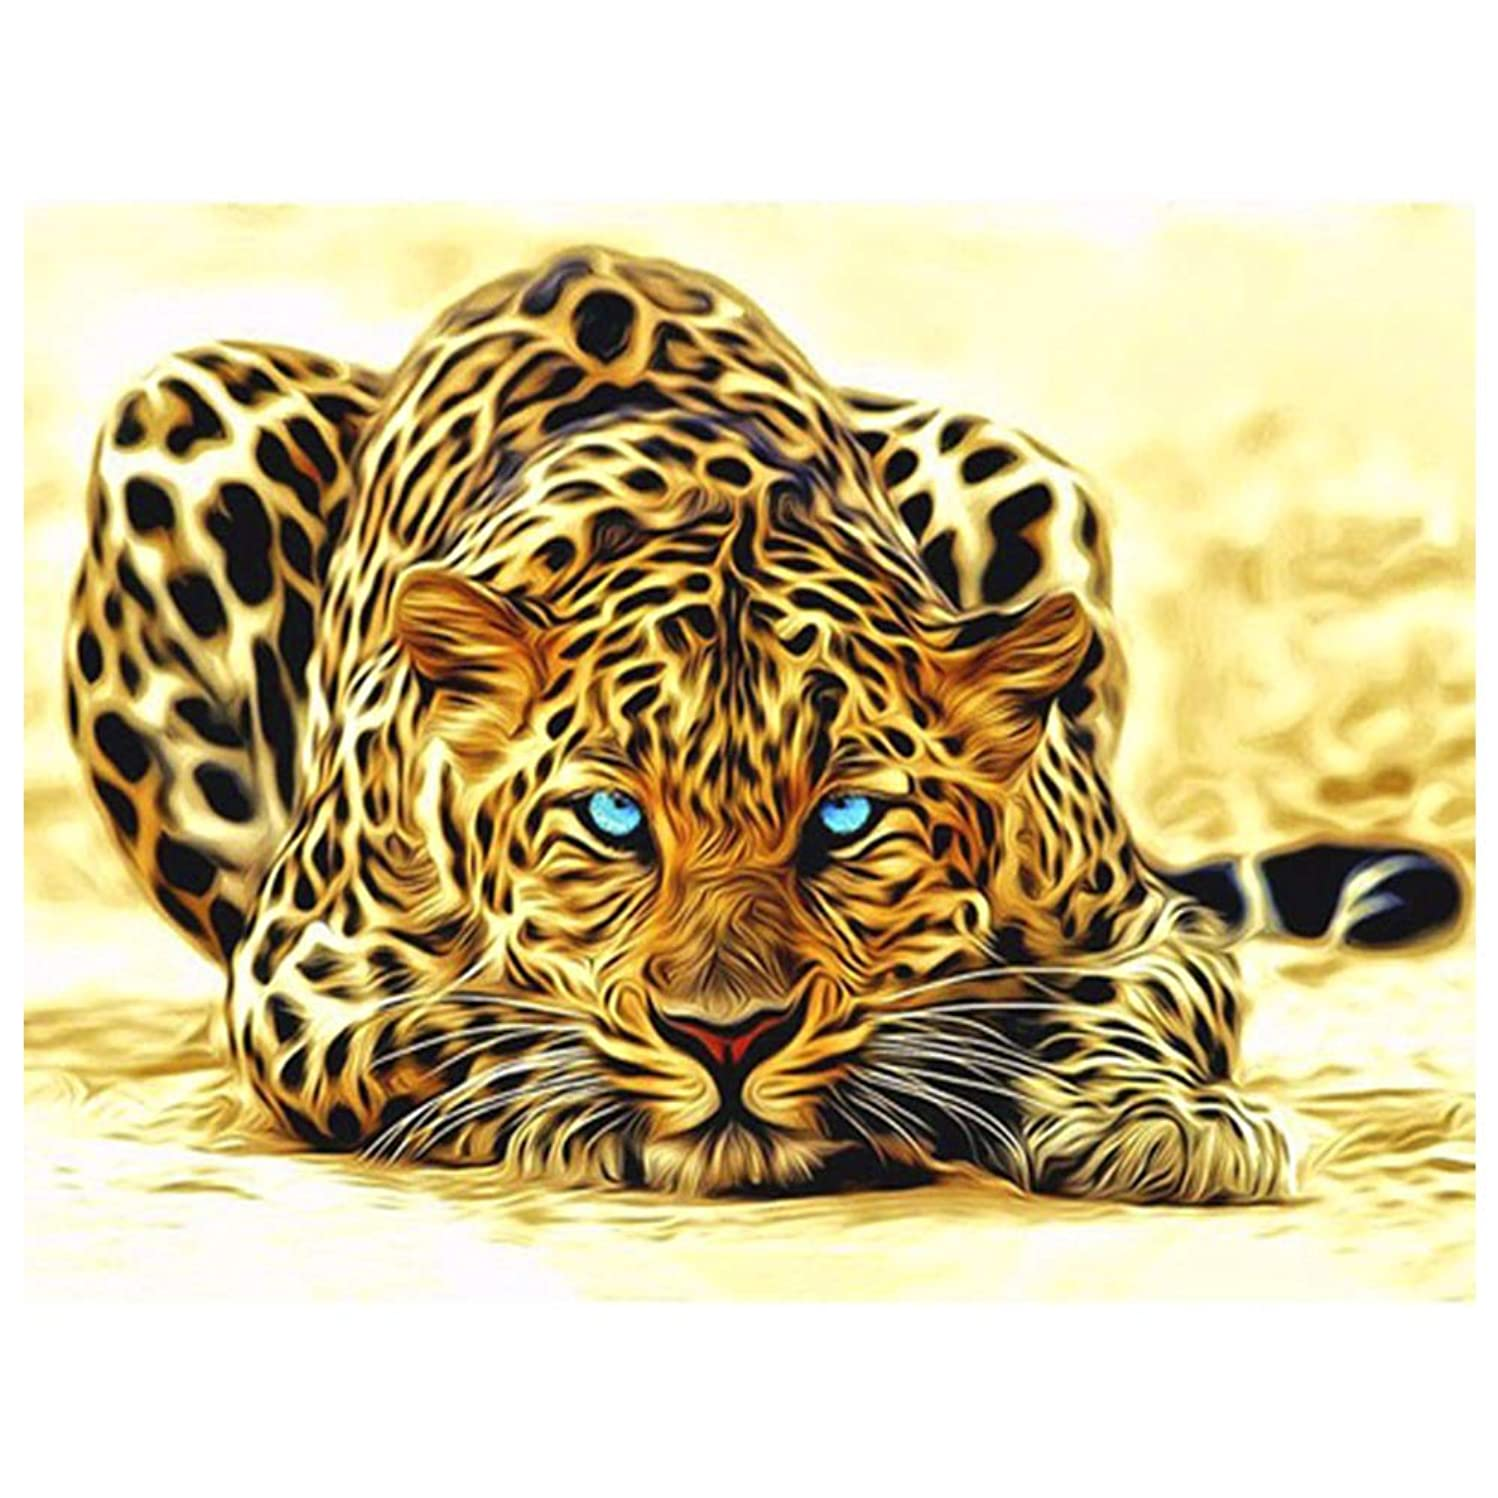 Geboor Paint by Numbers for Adults DIY Oil Painting Kits On Canvas with Brush Accessories for Beginner and Painter Without Frame 40x50cm Leopard